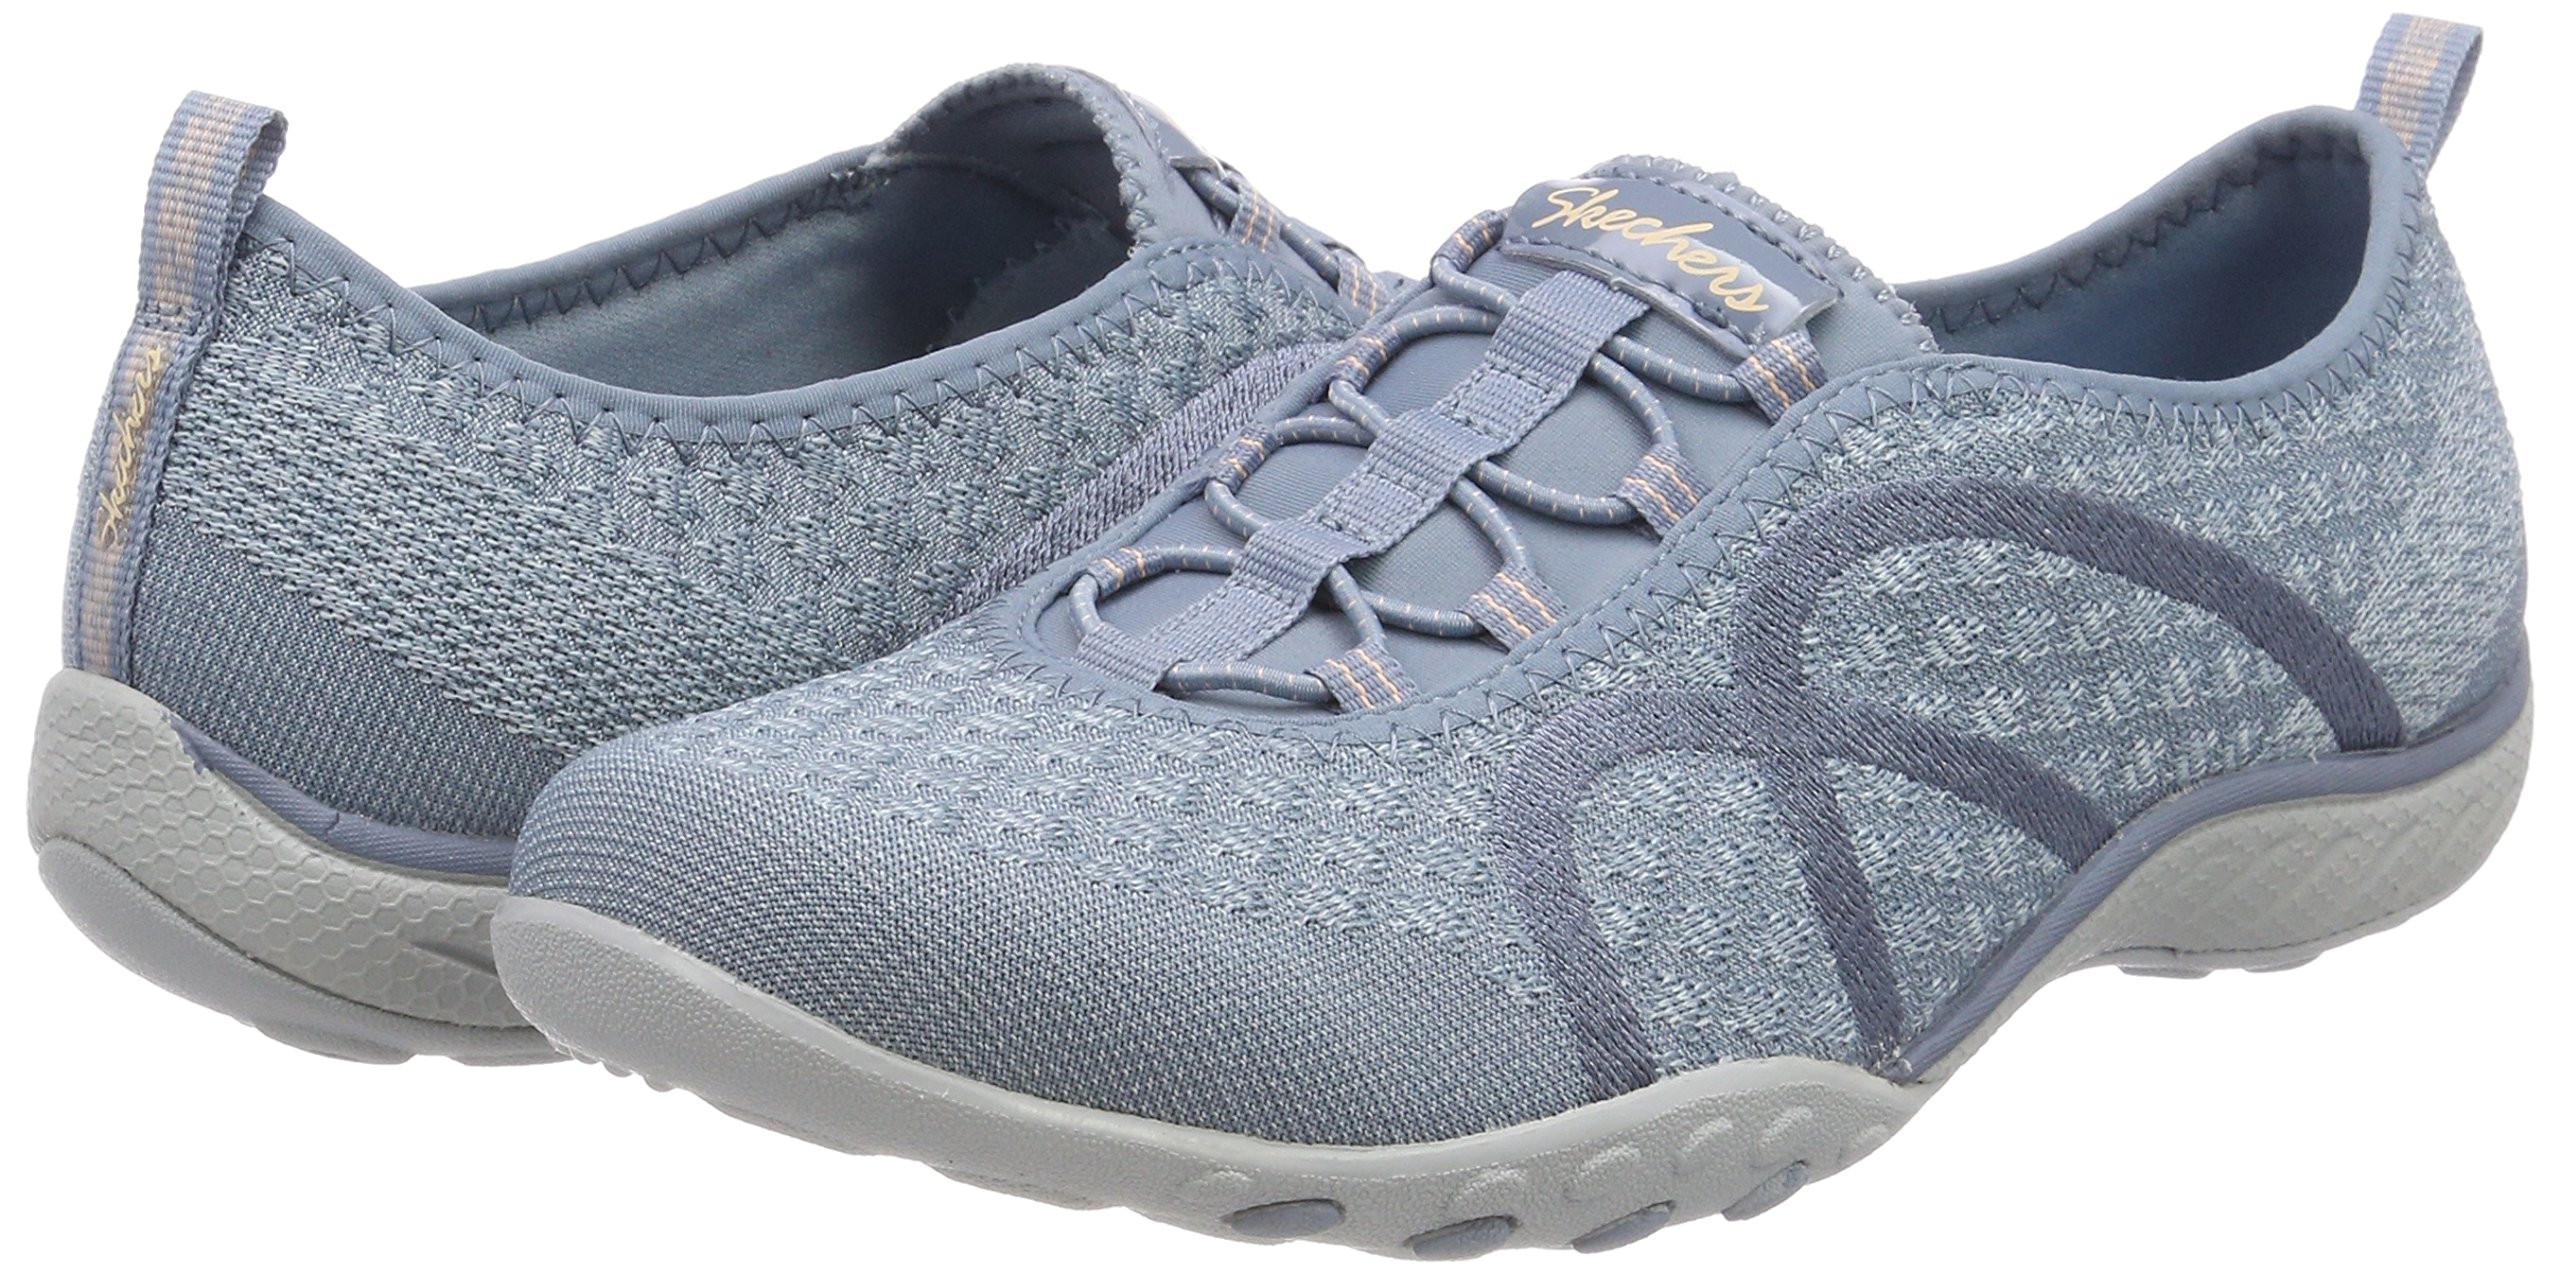 Skechers Relaxed Fit Breathe Easy Fortune Knit Womens Bungee Sneakers Blue 8 by Skechers (Image #5)